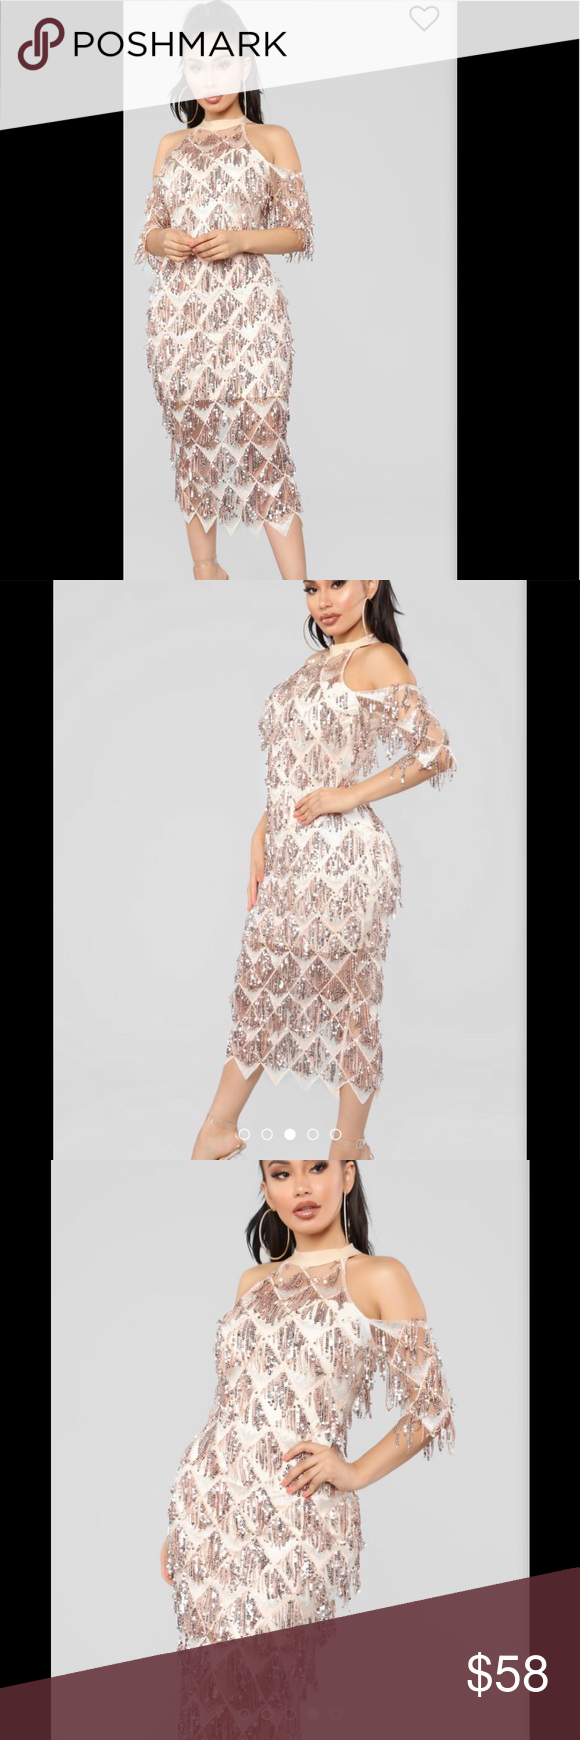 e242ebeeb5f FashionNova L ATISTE Dress Sz Med Rosegold NWT FashionNova L ATISTE Diamond  in the